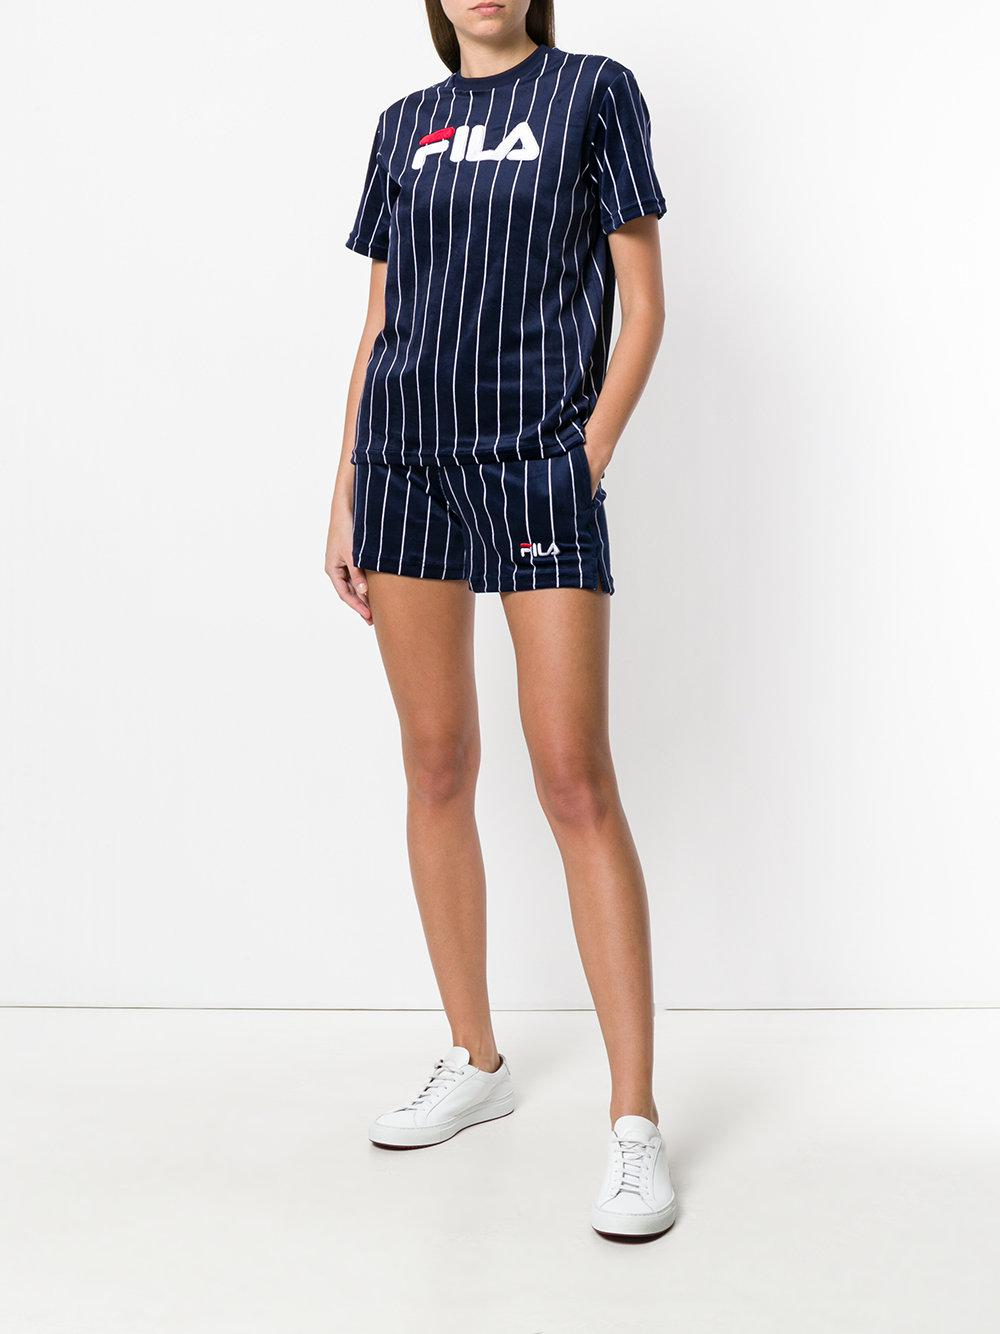 Fila Synthetic Striped Shorts in Blue